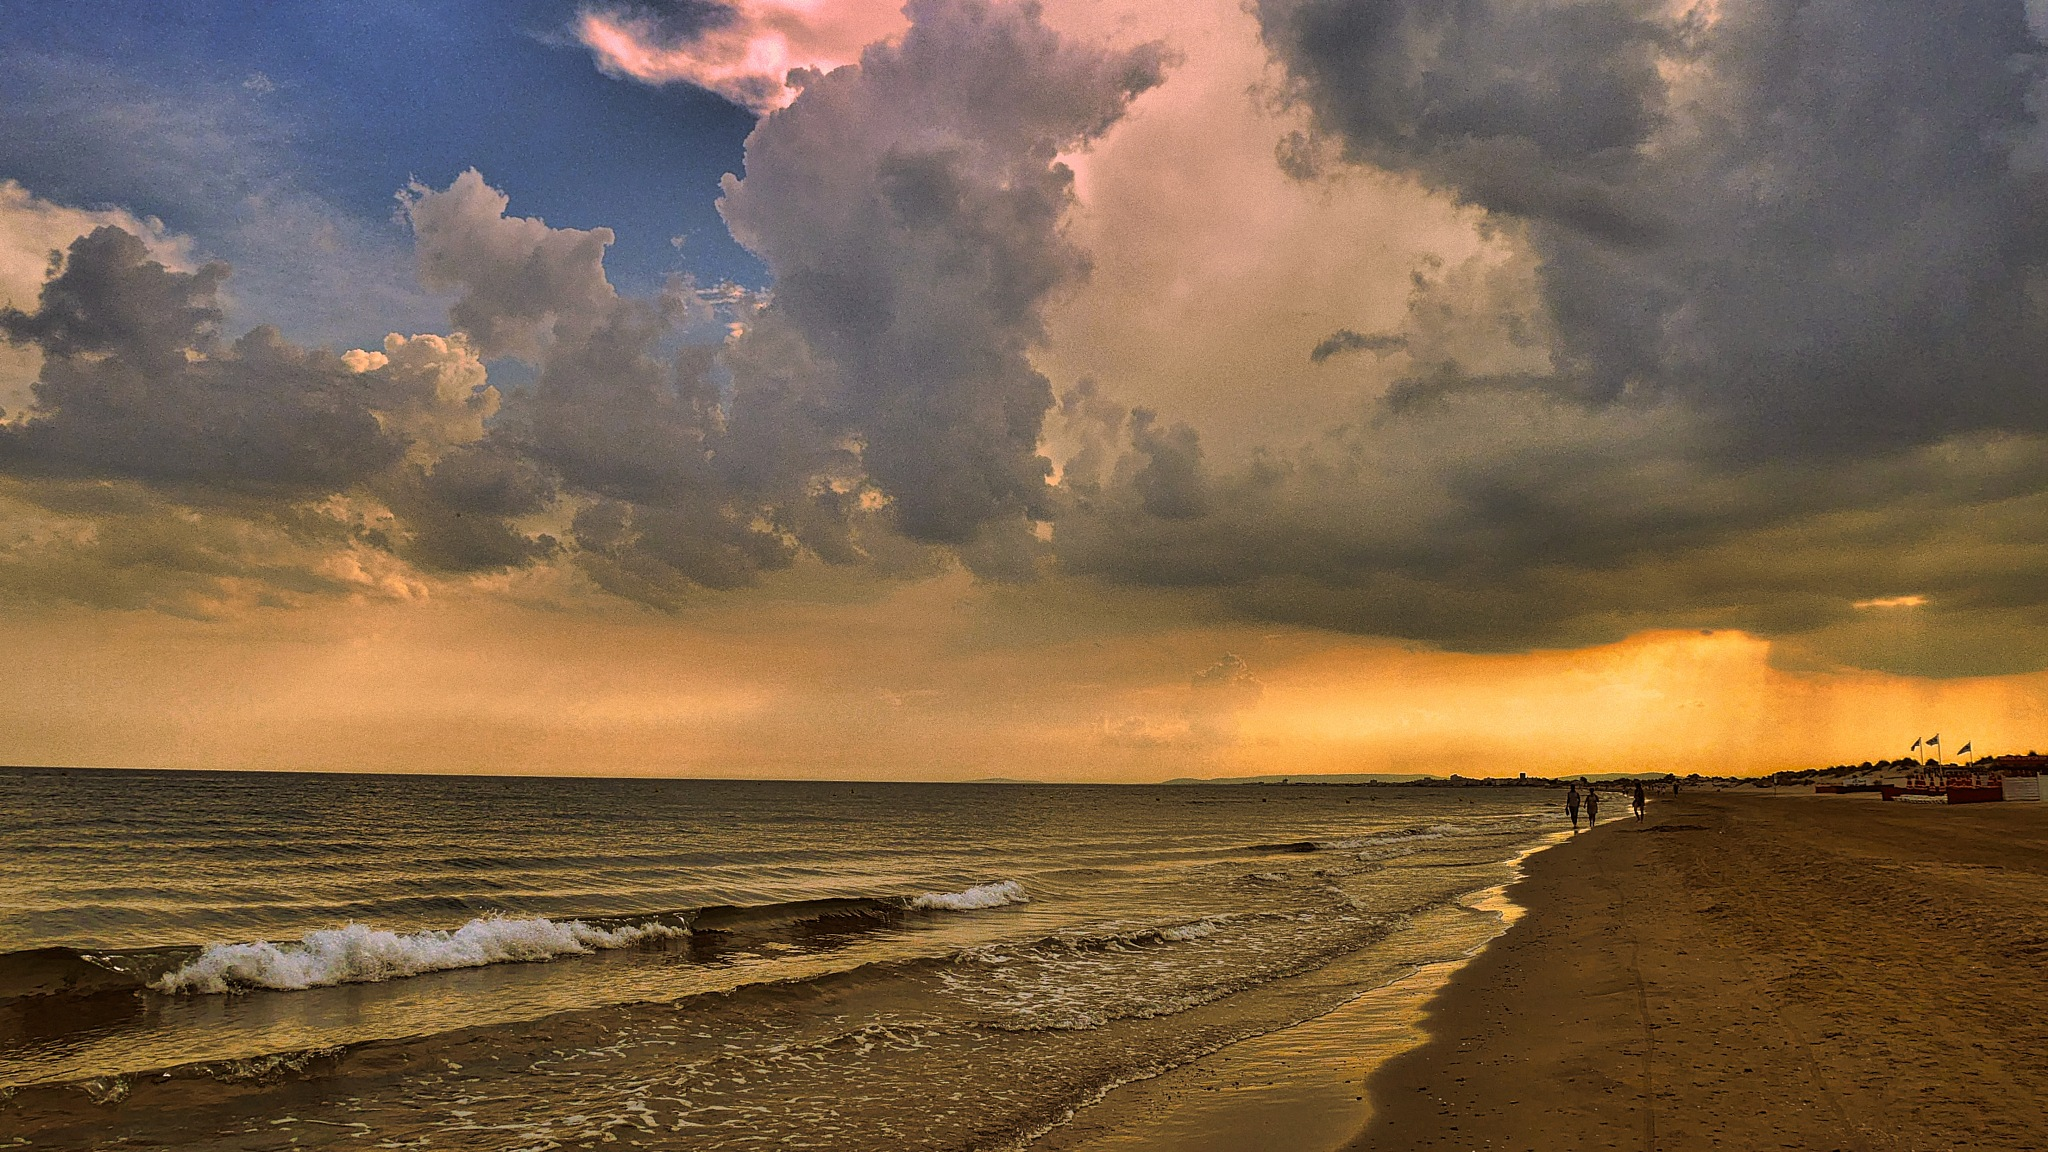 cloudy sunset by alain michel